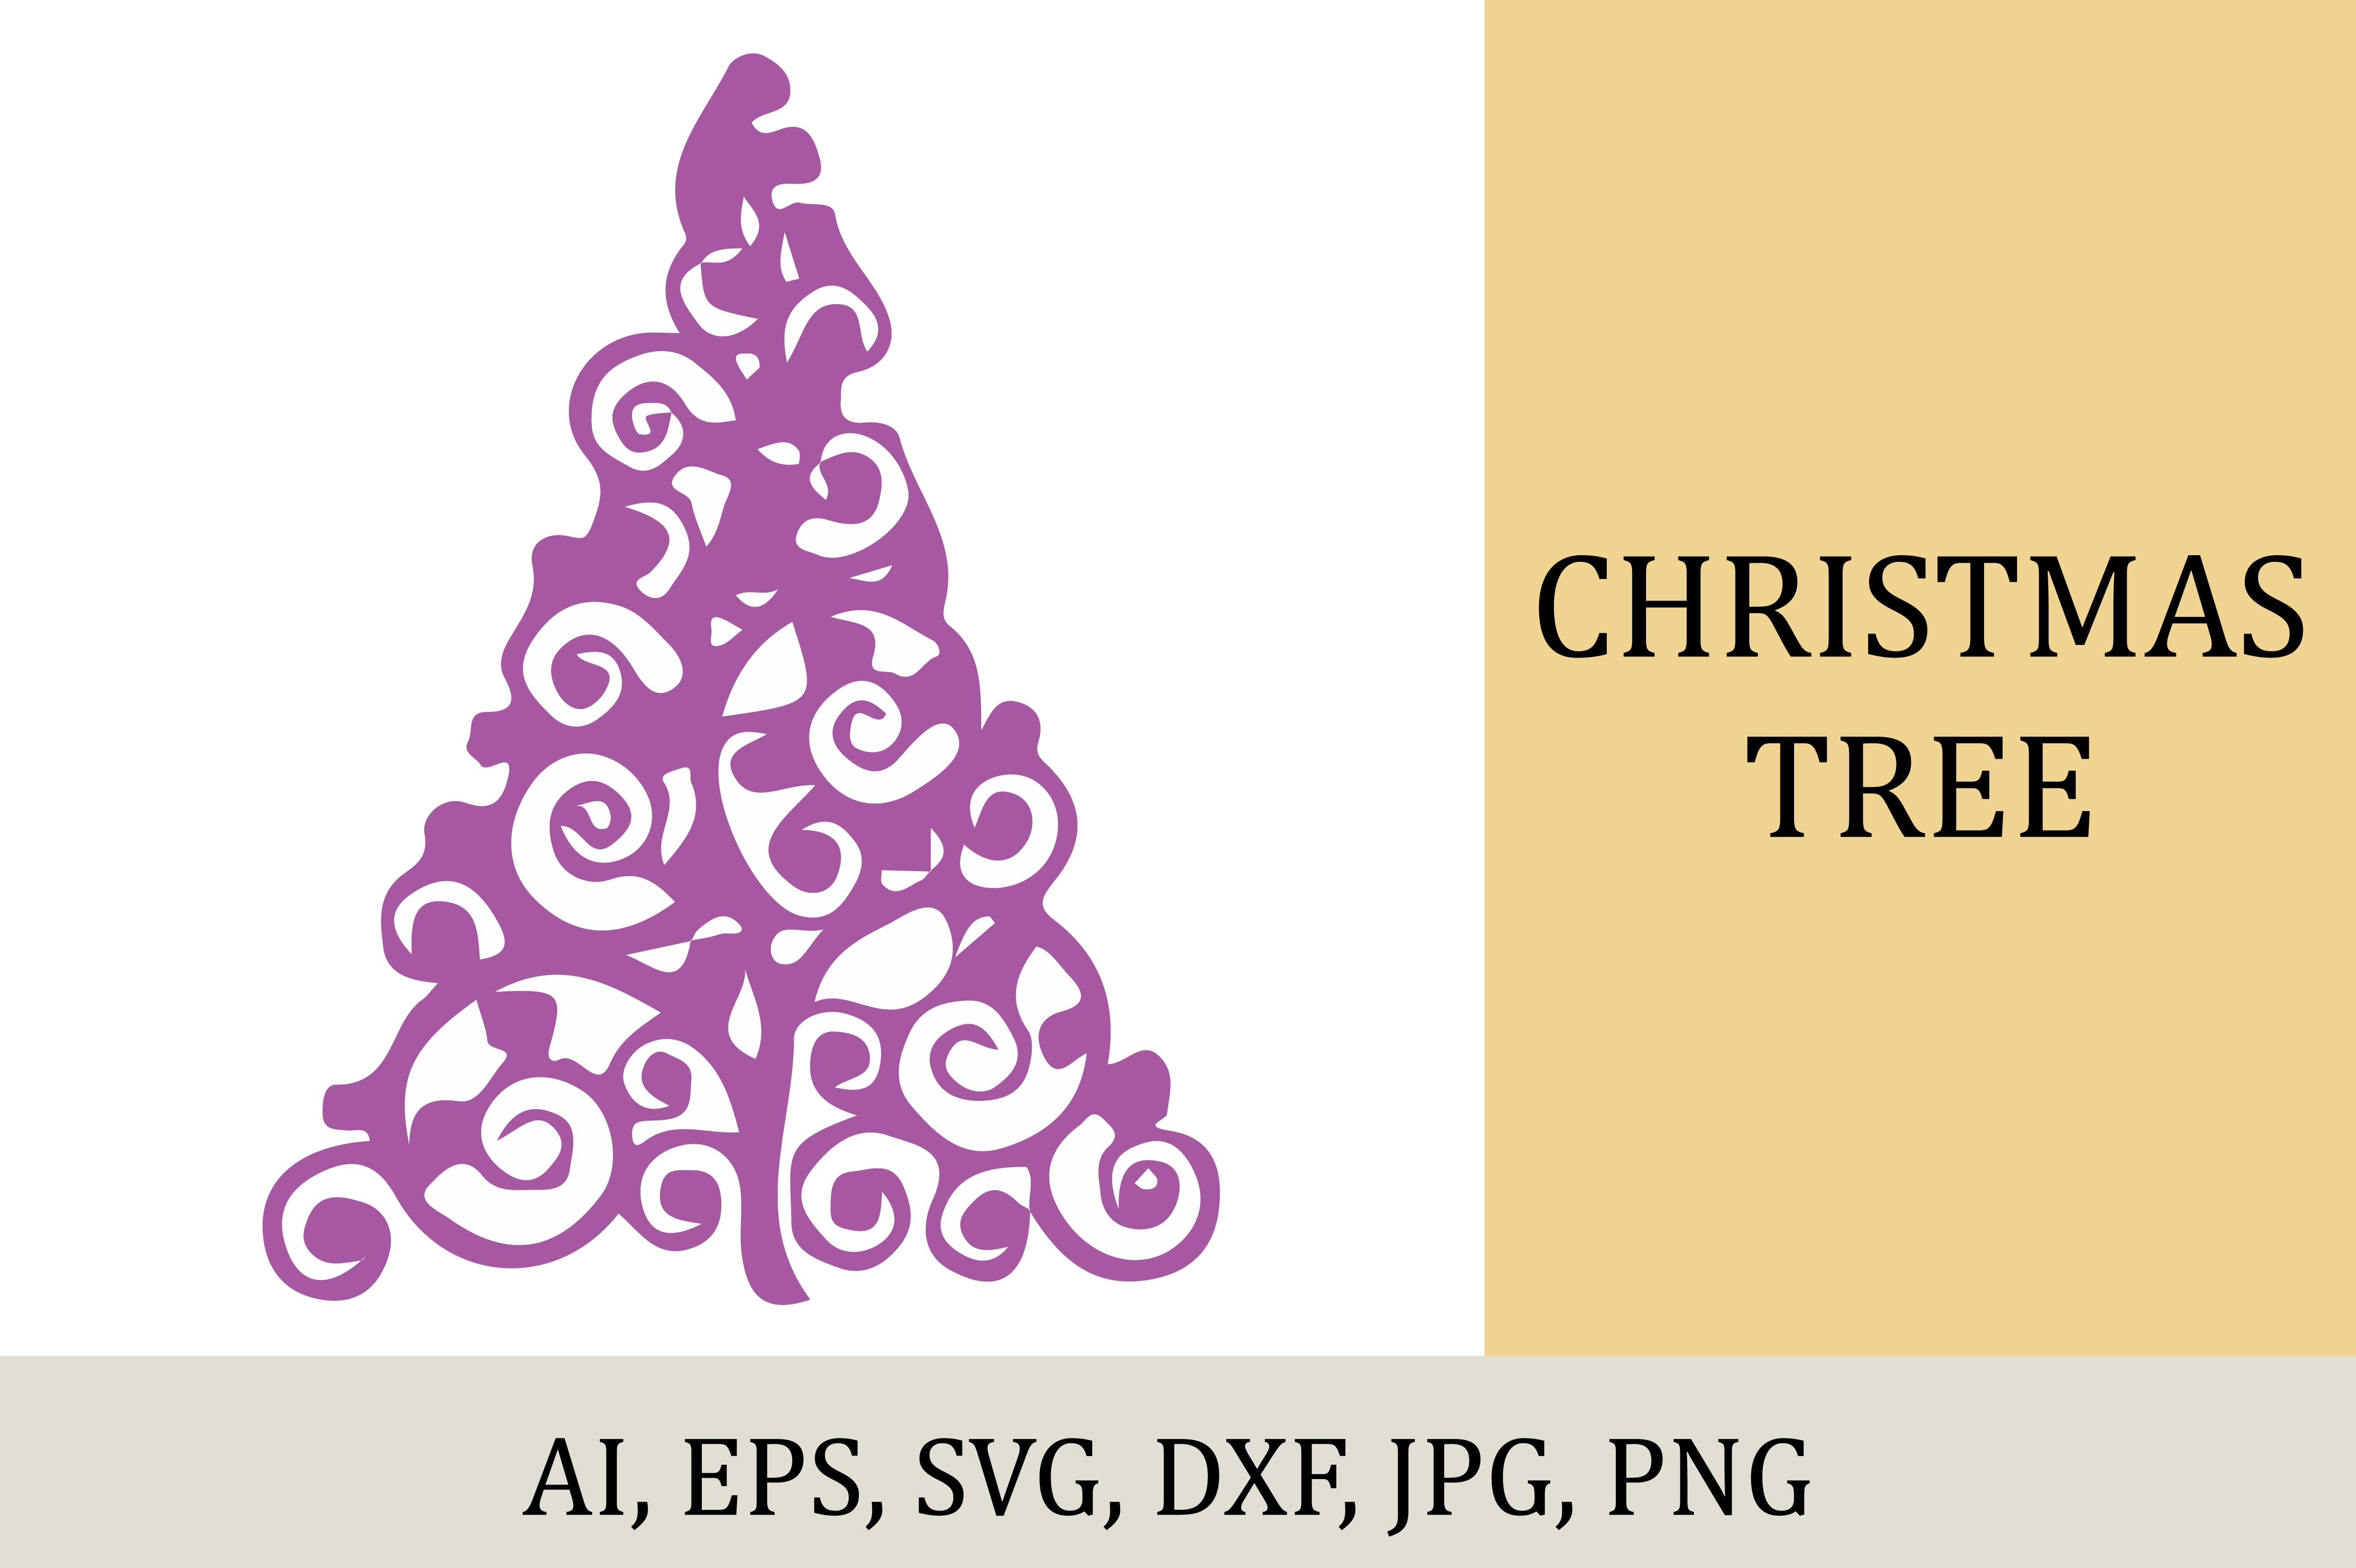 Download Free Christmas Grafik Von Themagicboxart Creative Fabrica for Cricut Explore, Silhouette and other cutting machines.